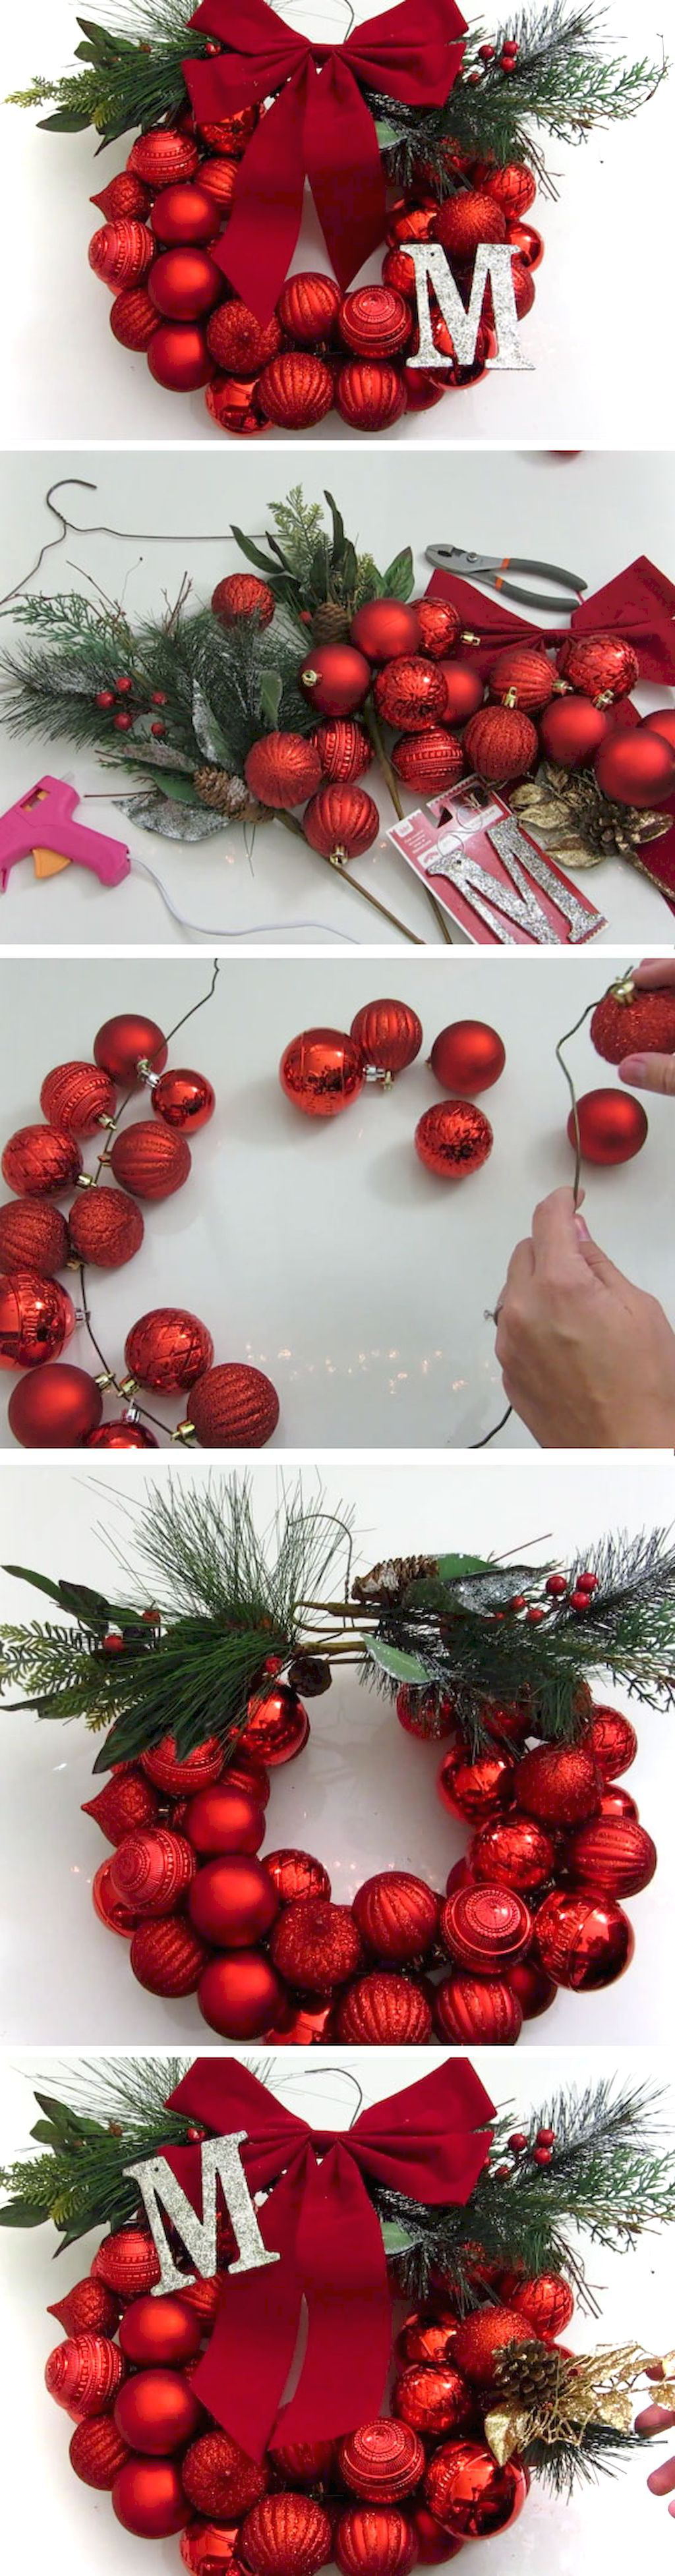 Nice 45 Peaceful Christmas Outdoor Decorations Ideas Httpsroomaniaccom45